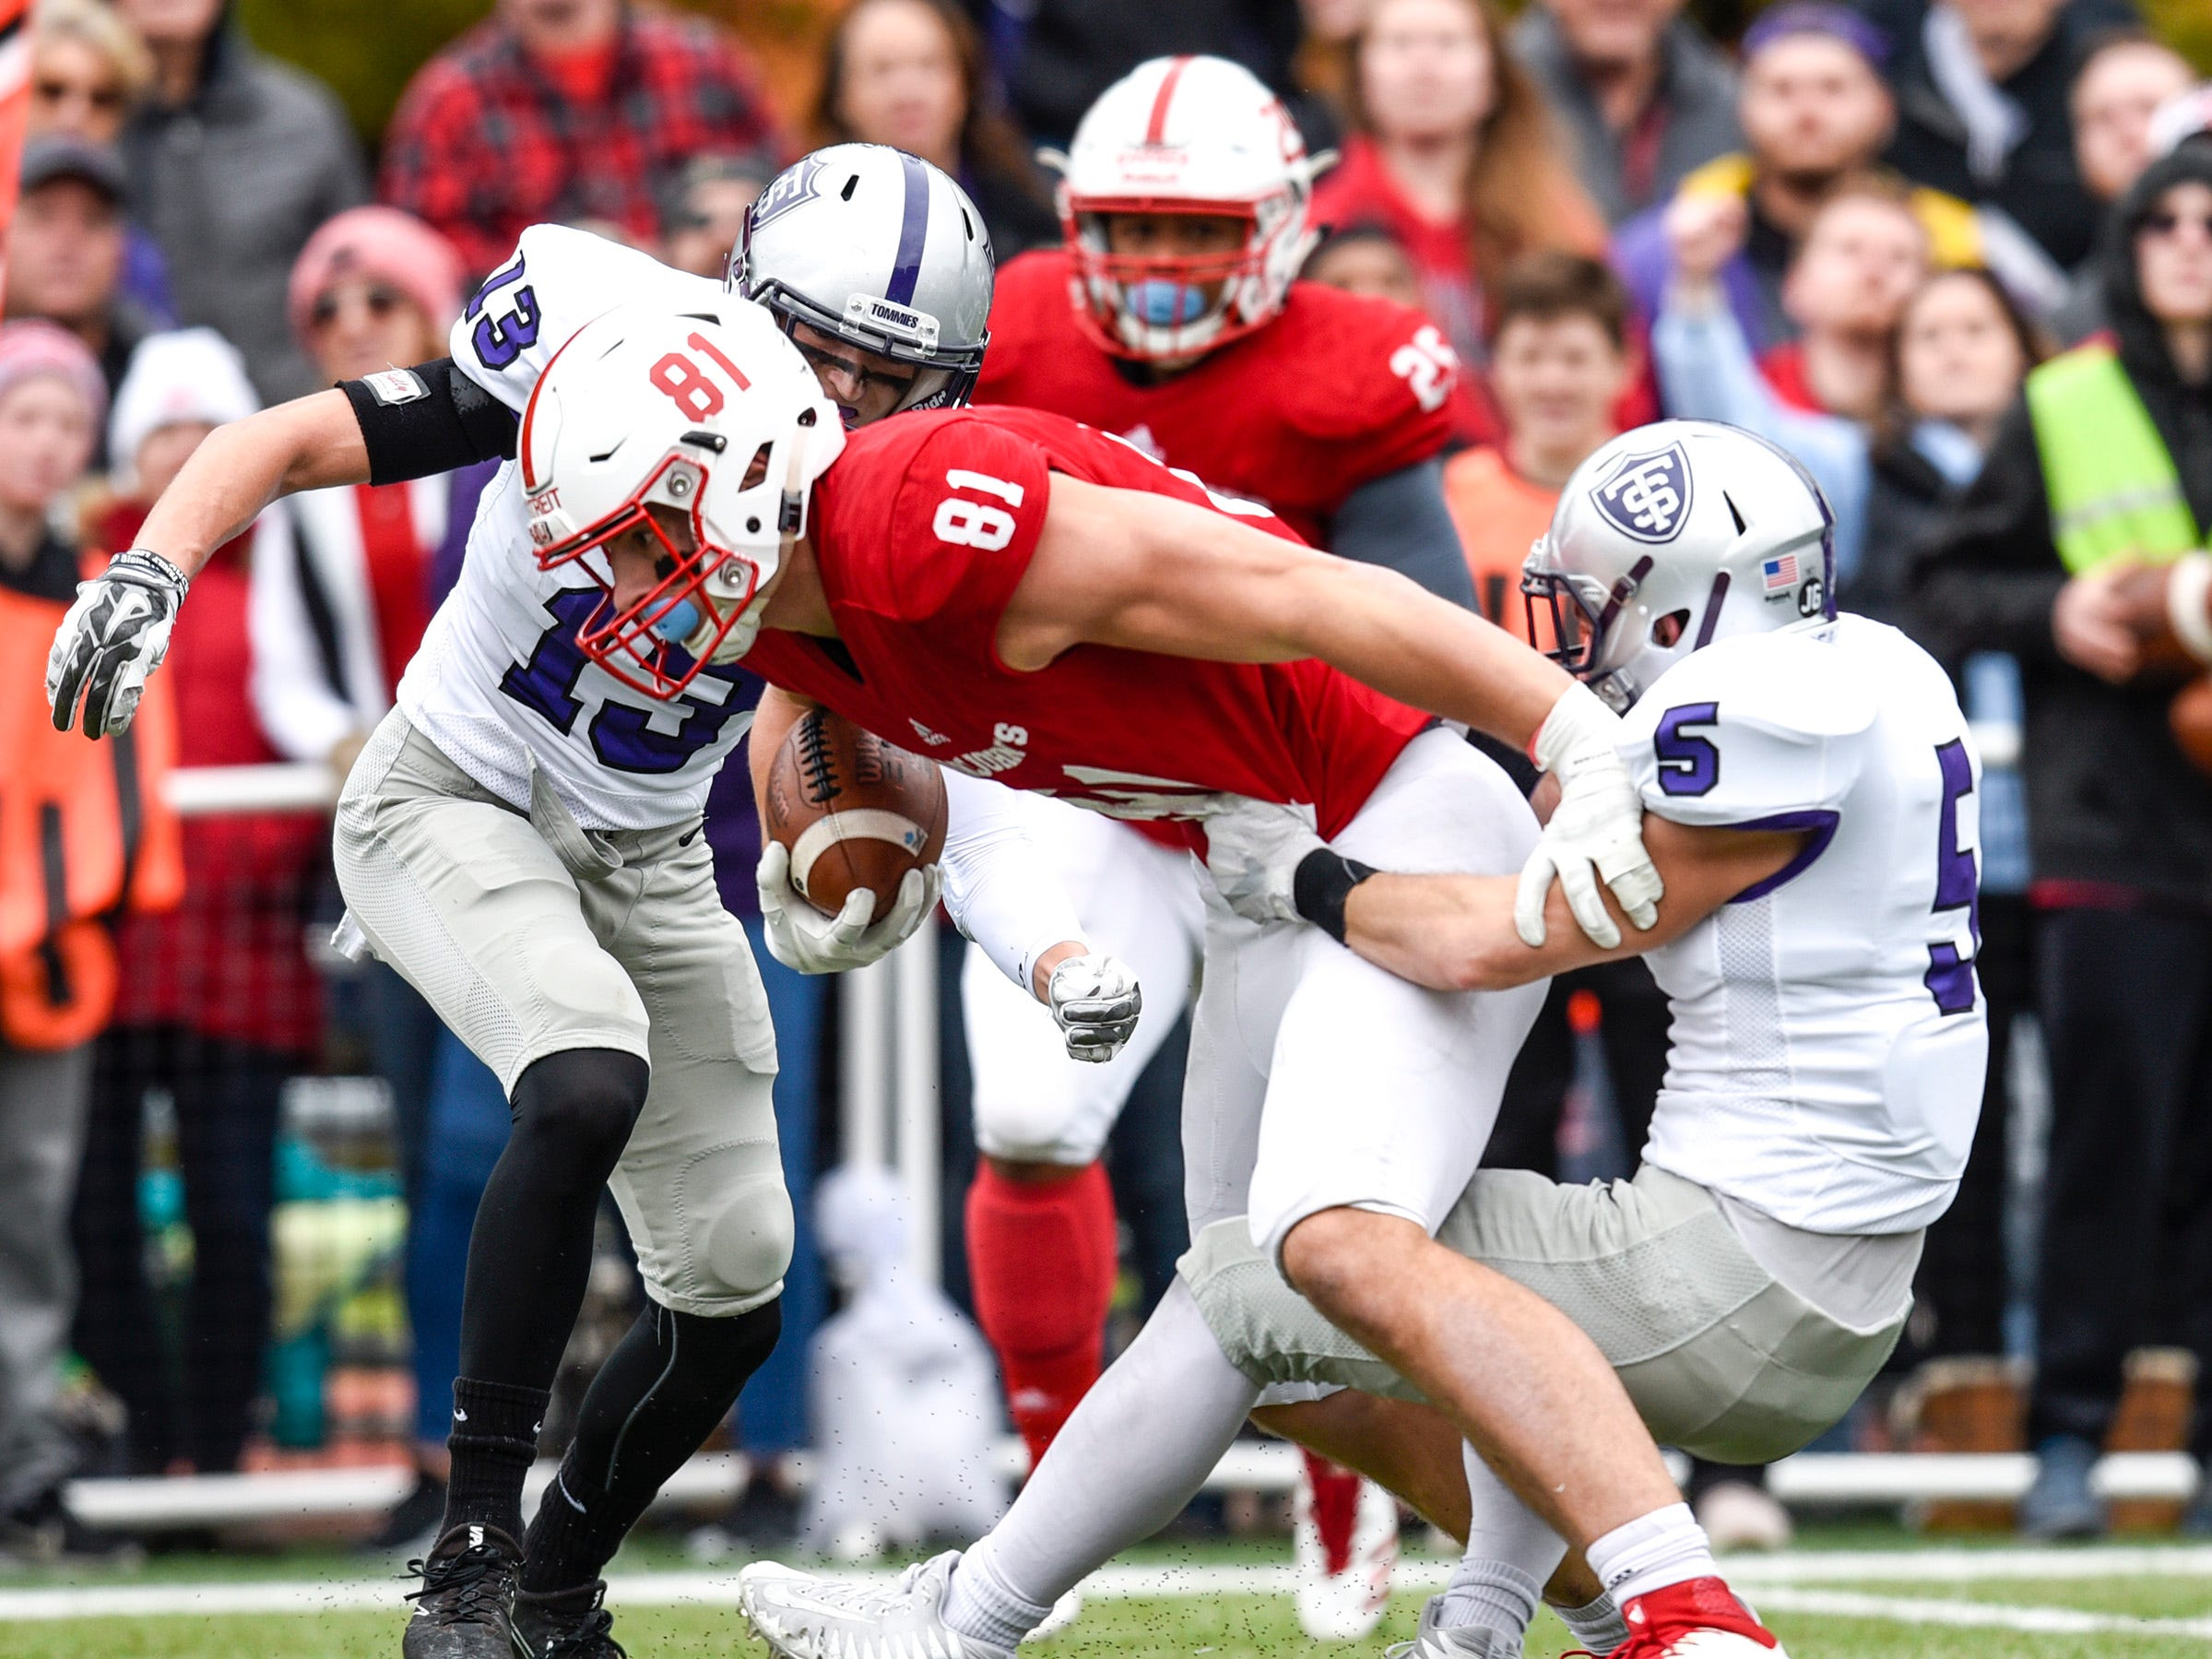 St. John's tight end Jared Streit is brought down by the St. Thomas defense during the first half Saturday, Oct. 13, in Collegeville.